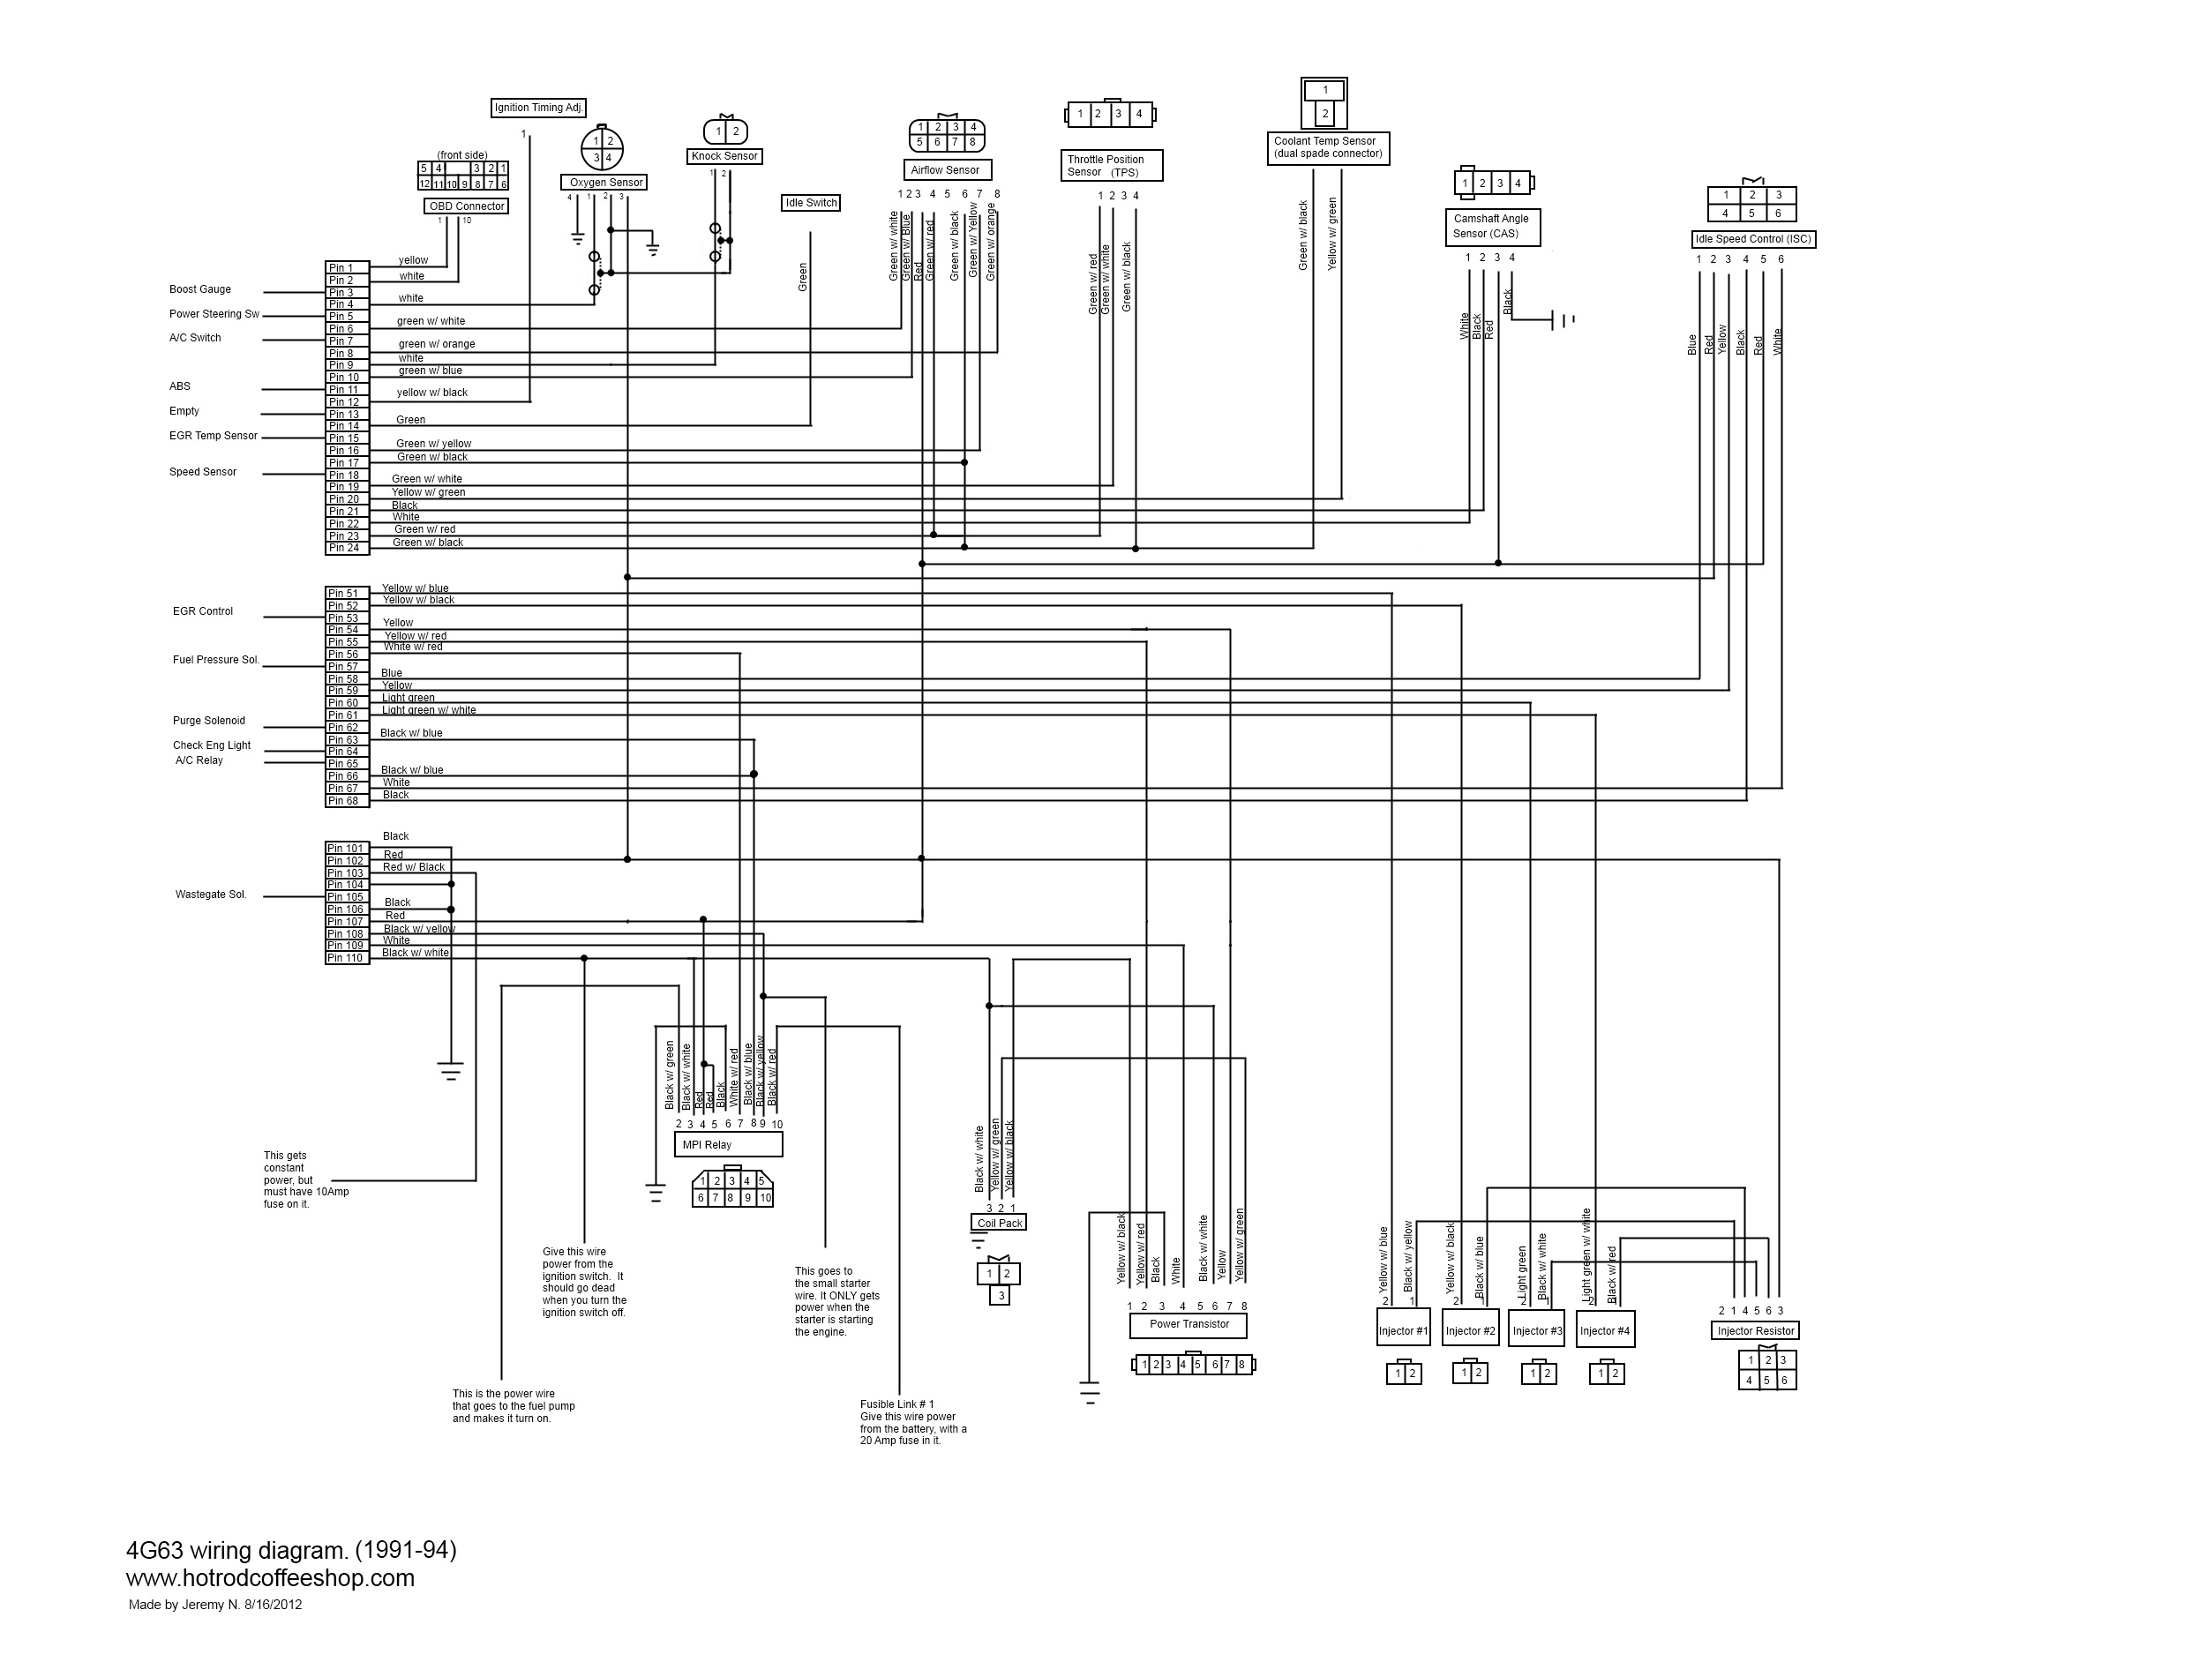 4g63t engine diagram – HOTRODcoffeeSHOP.com on m44 engine diagram, h1 engine diagram, g20 engine diagram, m20 engine diagram, m96 engine diagram, fx45 engine diagram, m54 engine diagram, m104 engine diagram, m52 engine diagram, m10 engine diagram, m50 engine diagram, m45 engine diagram, m62 engine diagram, m60 engine diagram, m42 engine diagram,